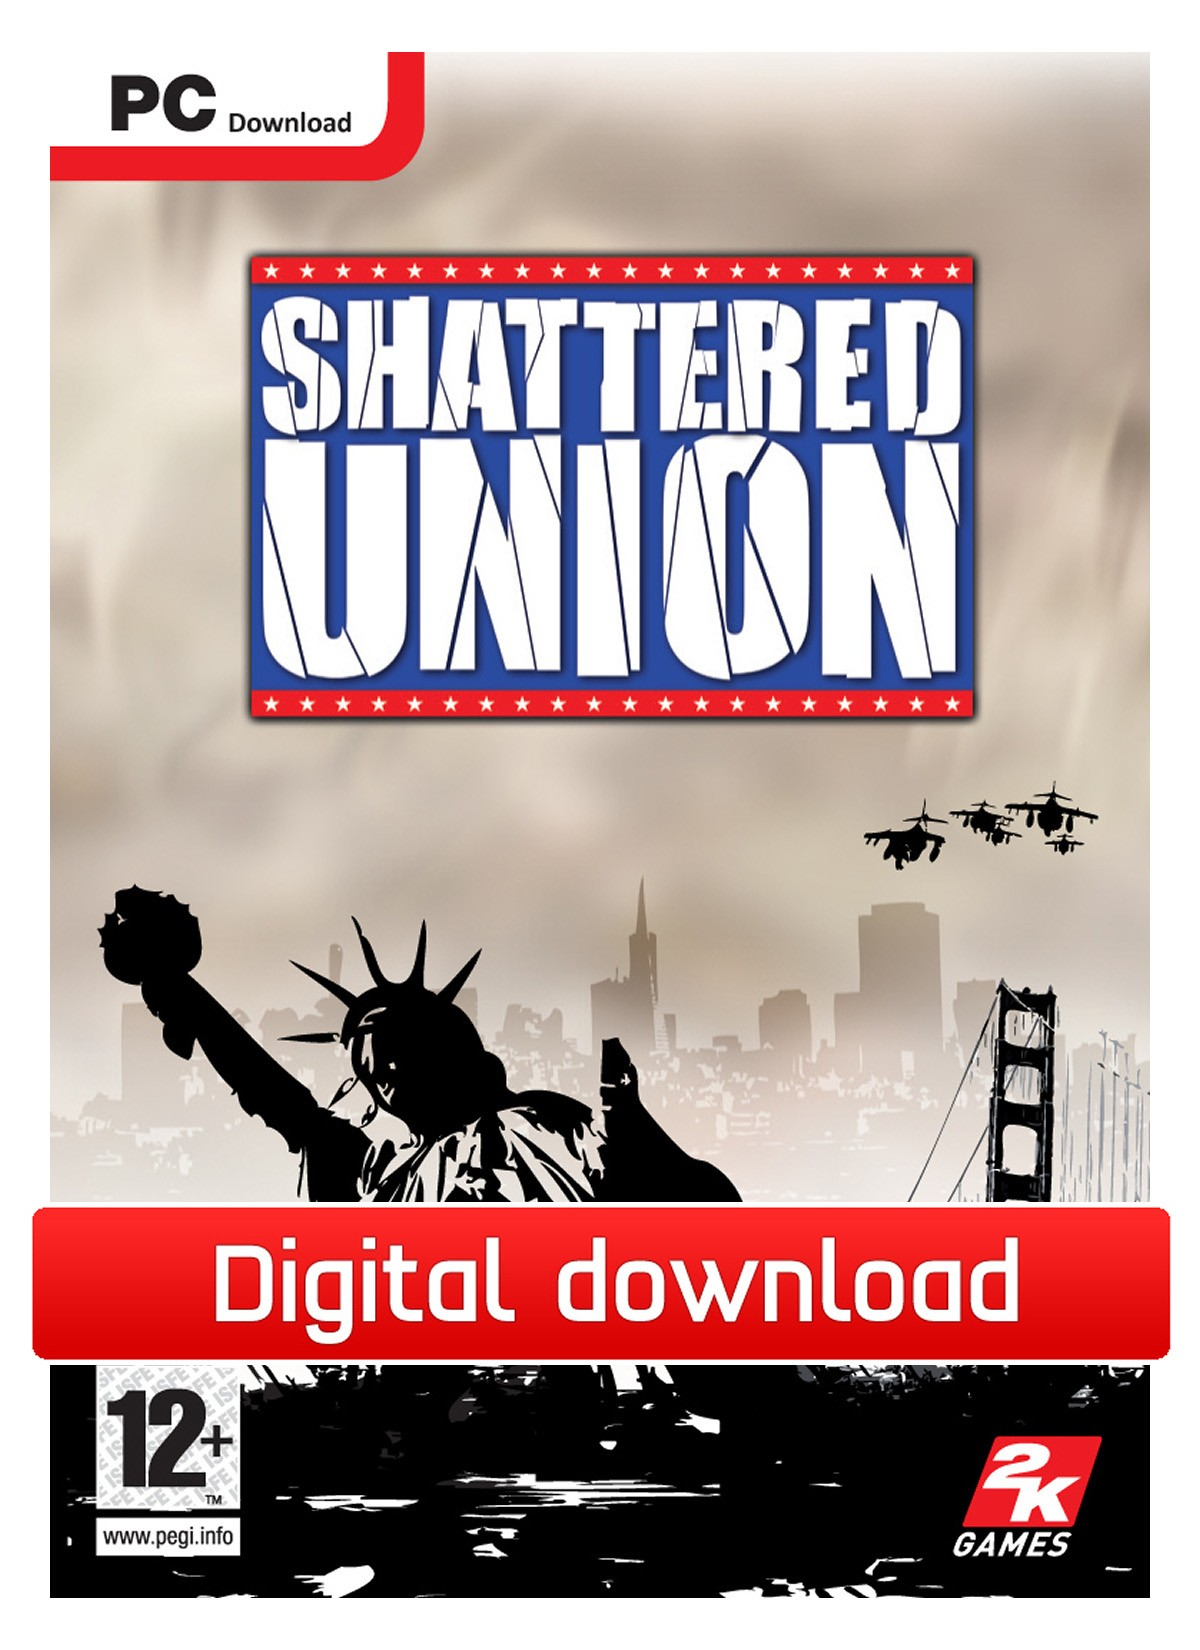 14575 : Shattered Union (PC nedlastning)